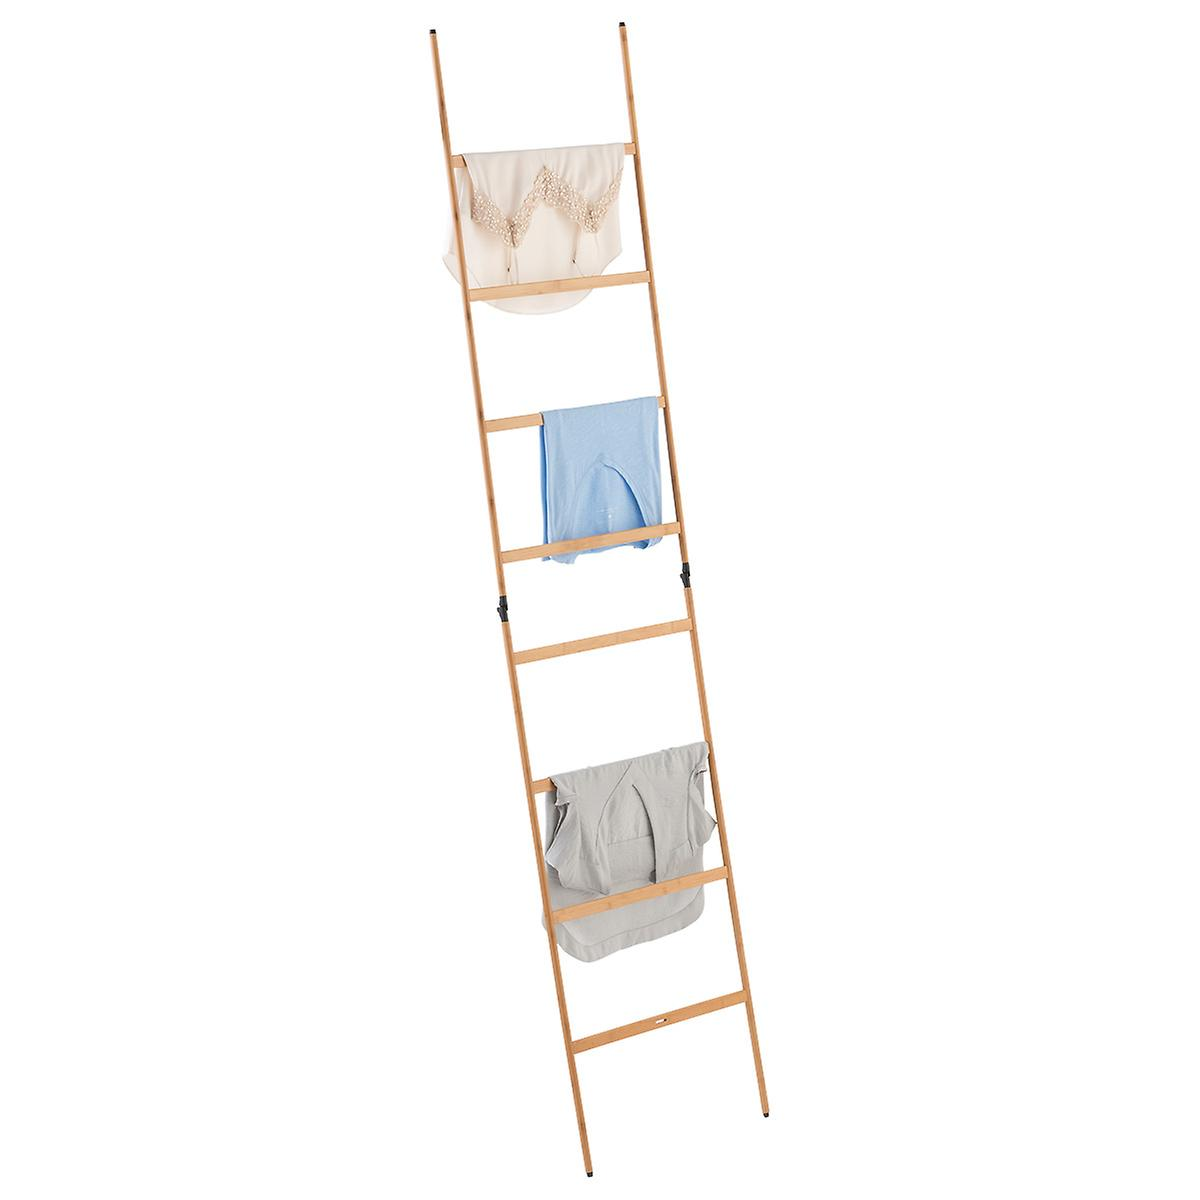 Bamboo Ladder Clothes Drying Rack